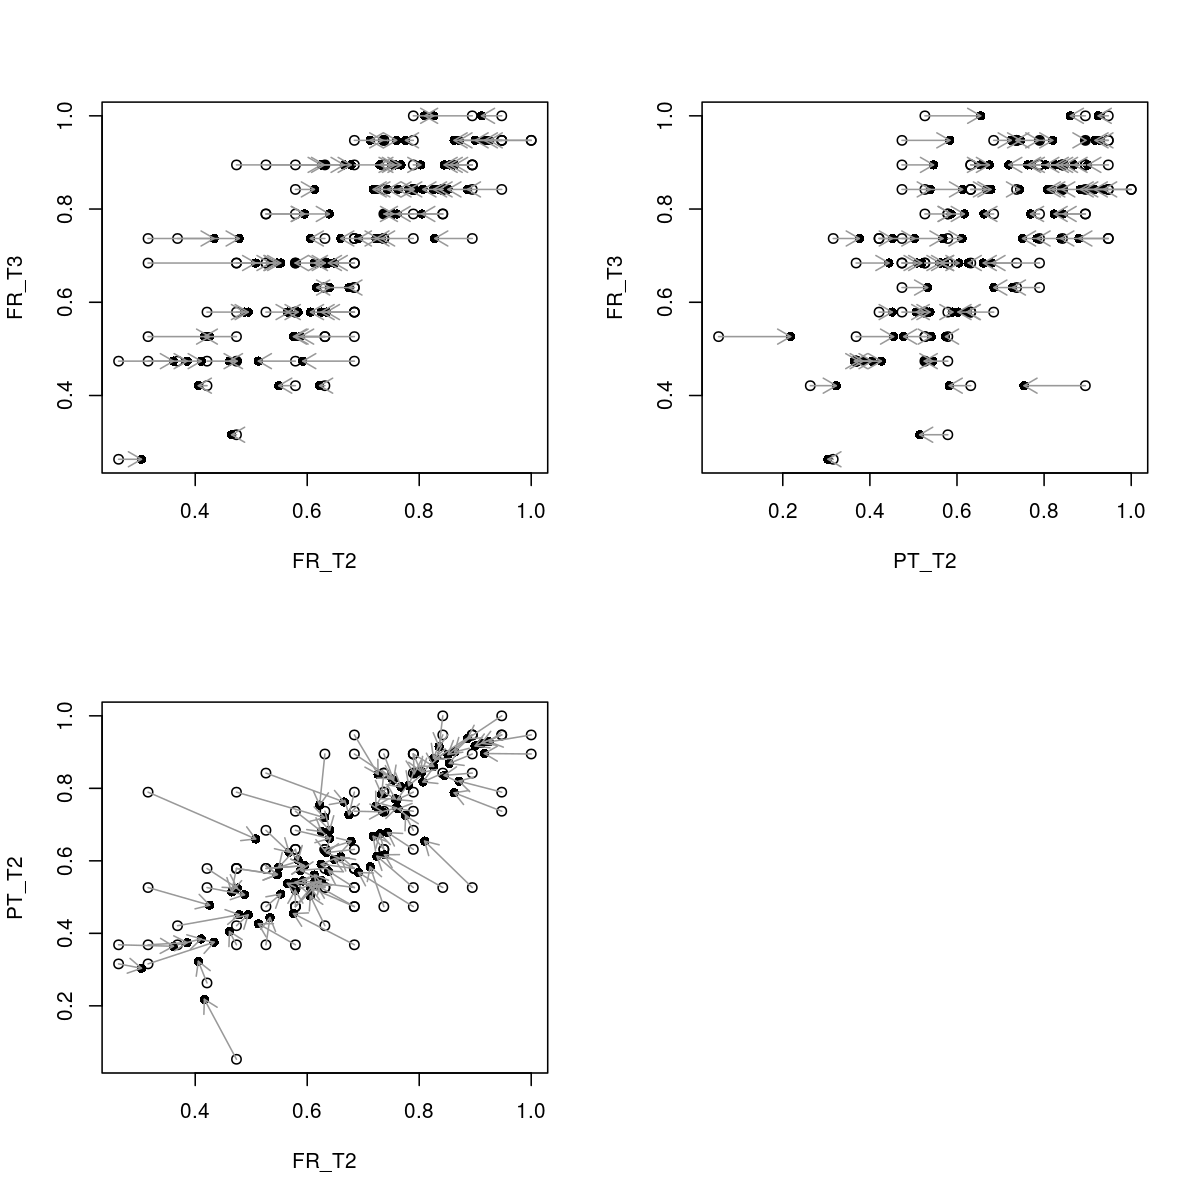 New blog post: Baby steps in Bayes: Accounting for measurement error on a control variable #rstats  https://t.co/thfy1twBY1 https://t.co/dDSDCzrC5L